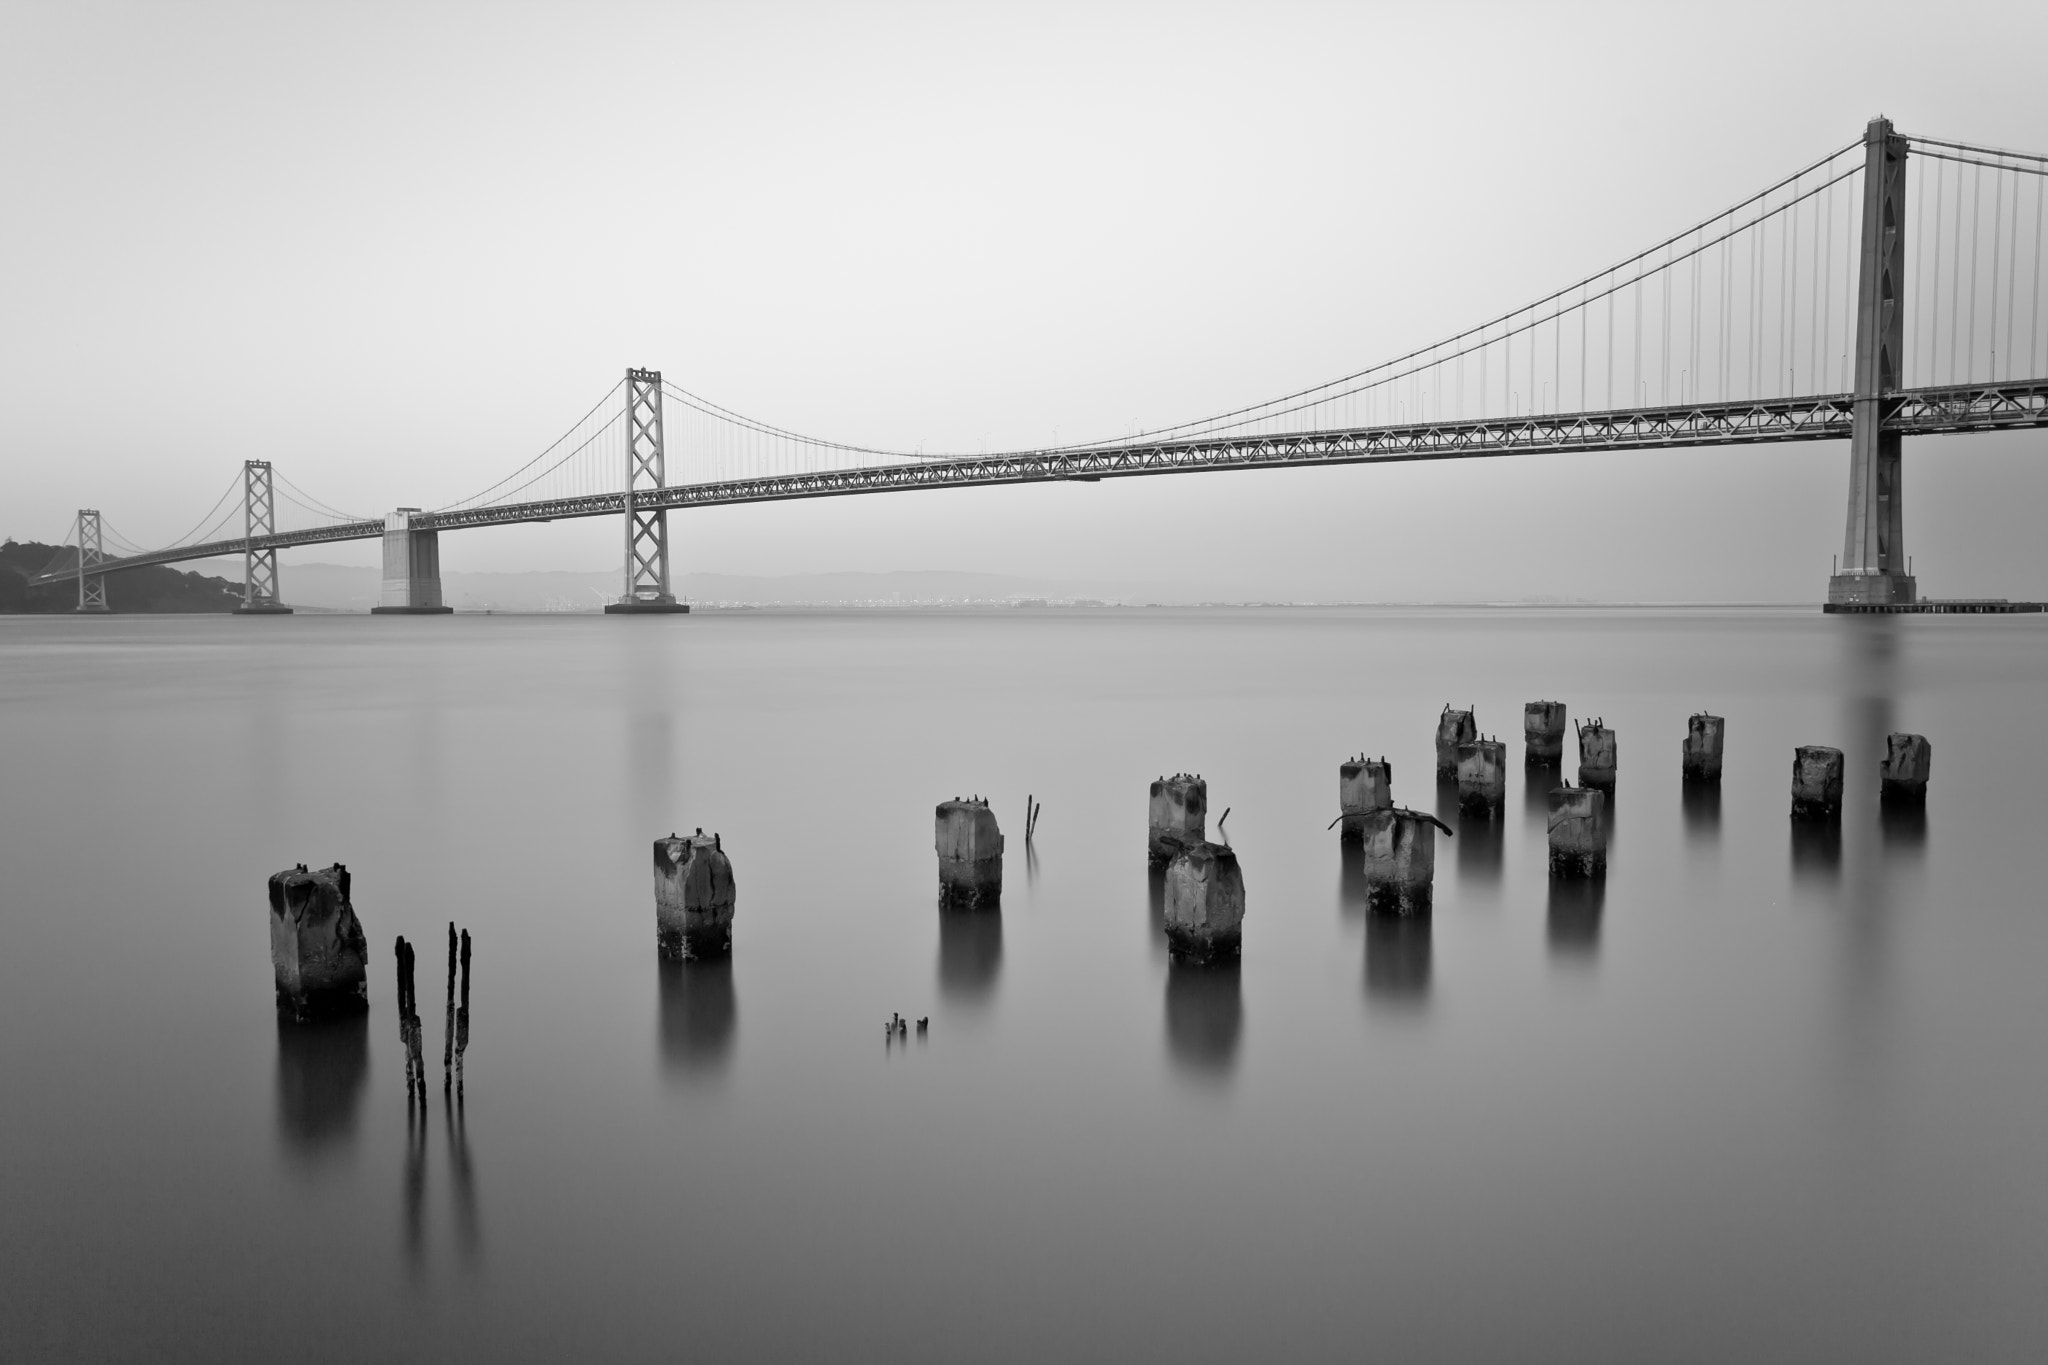 Photograph Bay Bridge by Mikhon on 500px